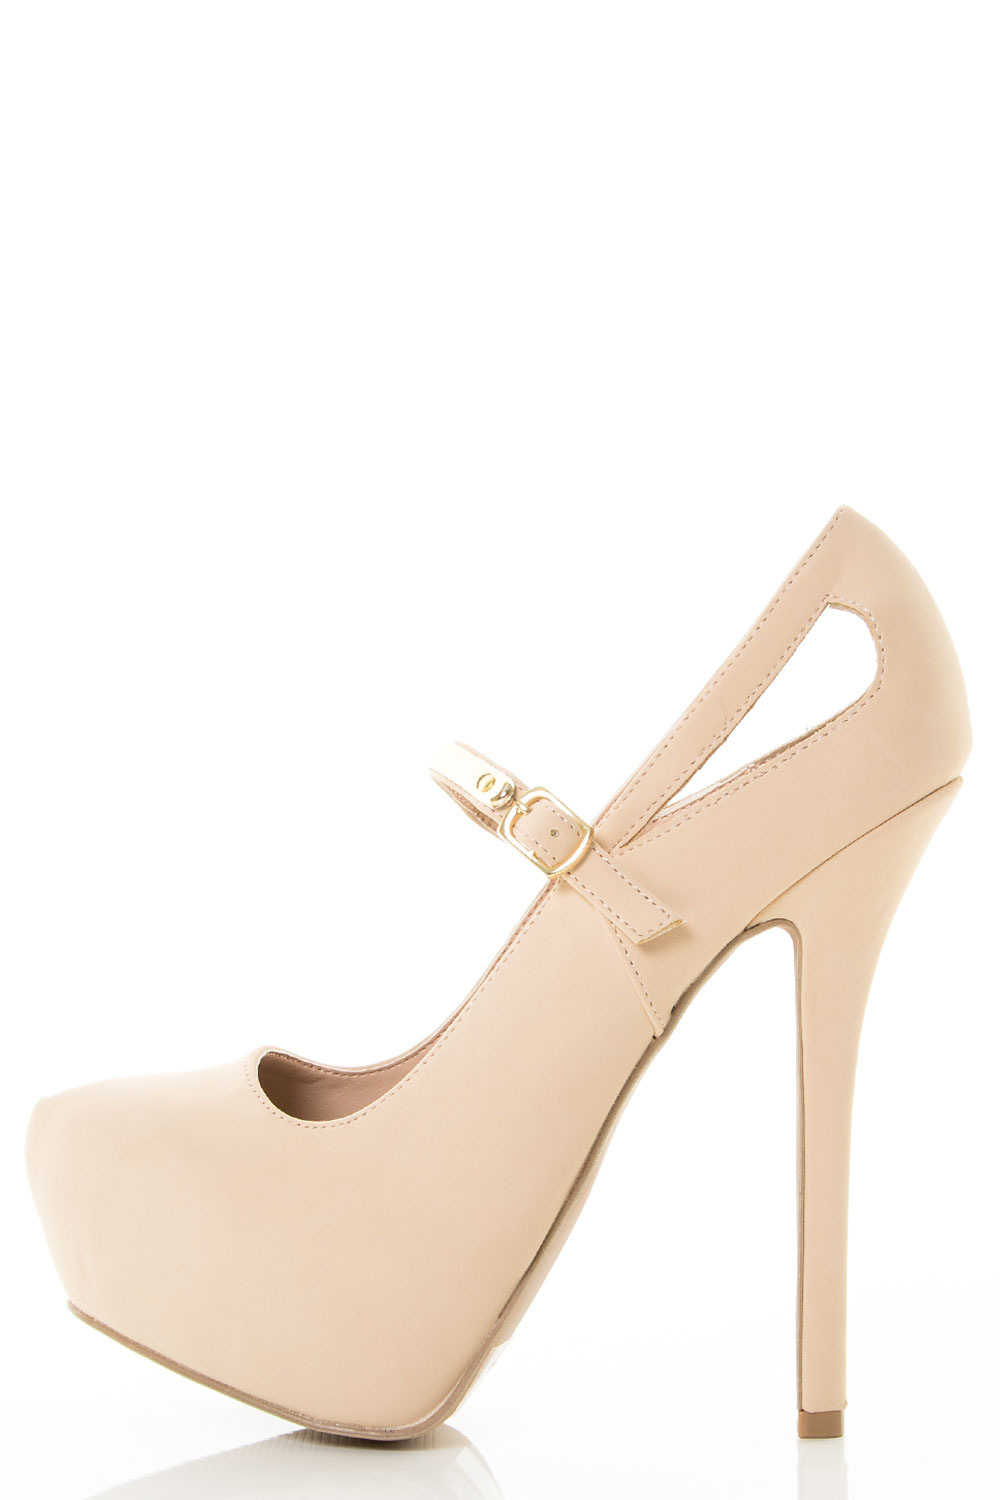 Mary Jane Almond Toe Platform Stiletto Gold Accent Strap Heels